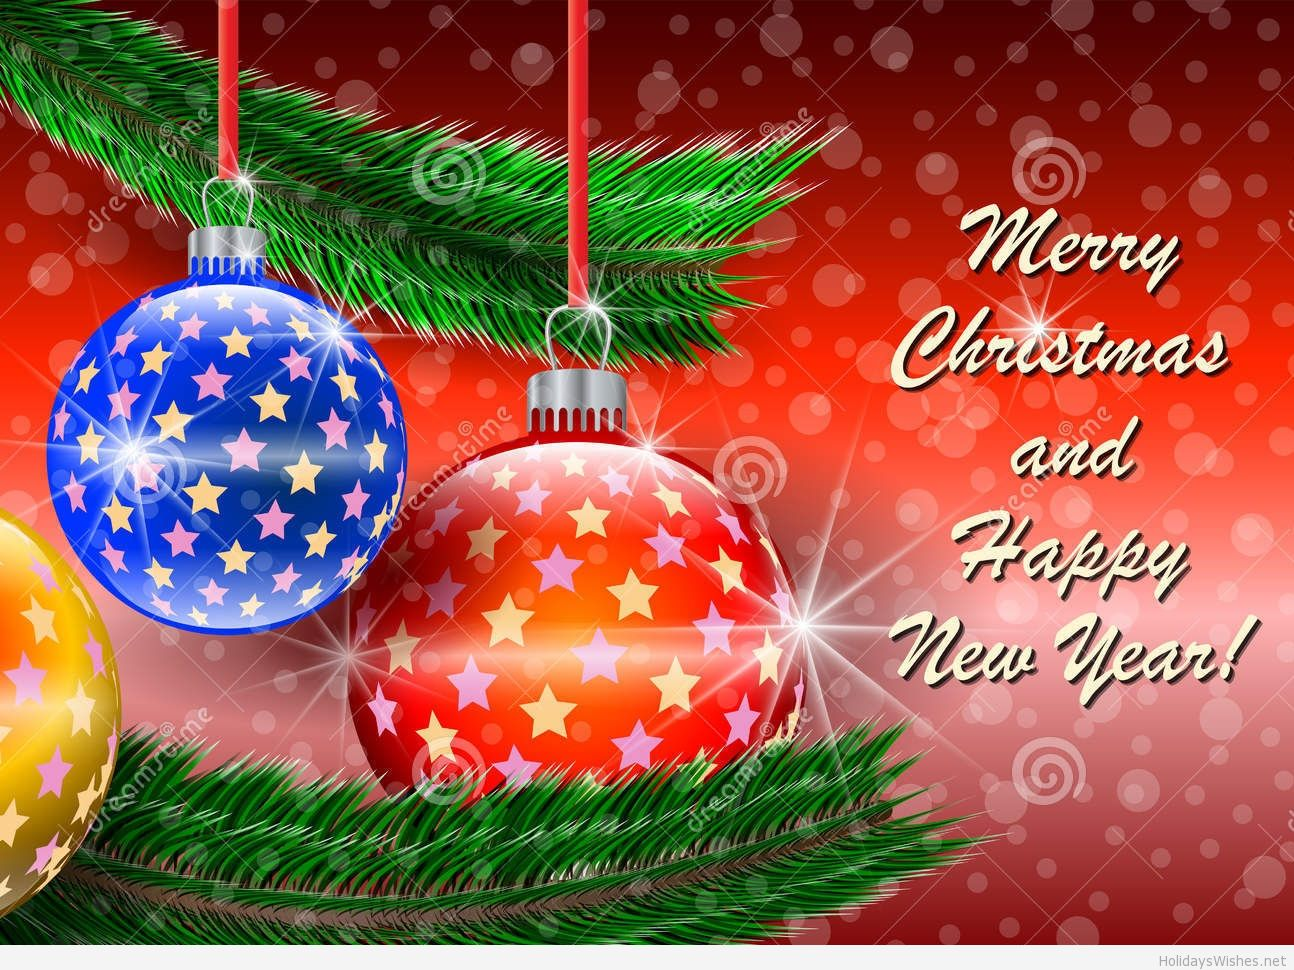 Amazing-merry-Christmas-and-Happy-new-year-2014-2015.jpg